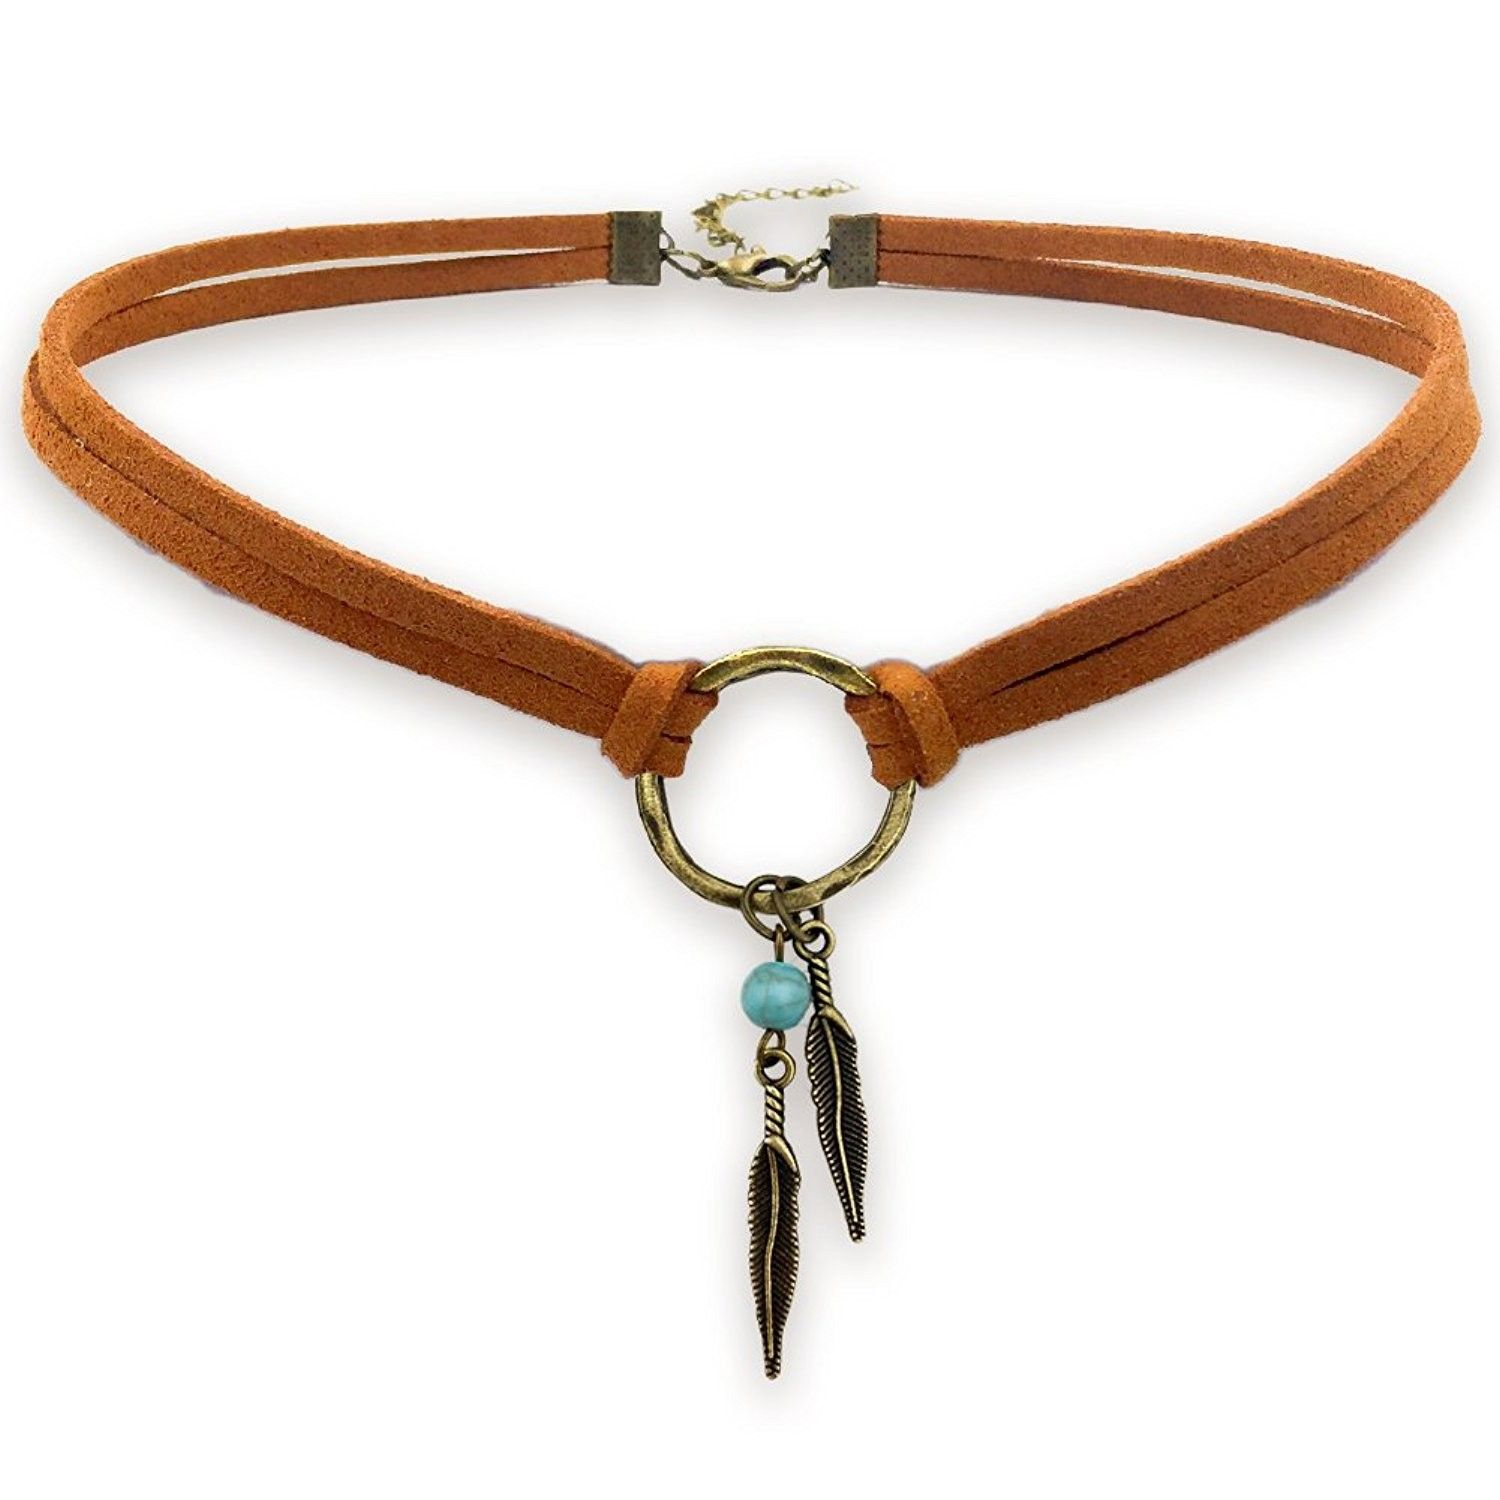 Suede Choker Necklace For Women  Native American Indian Jewelry Within Recent Golden Tan Leather Feather Choker Necklaces (View 22 of 25)